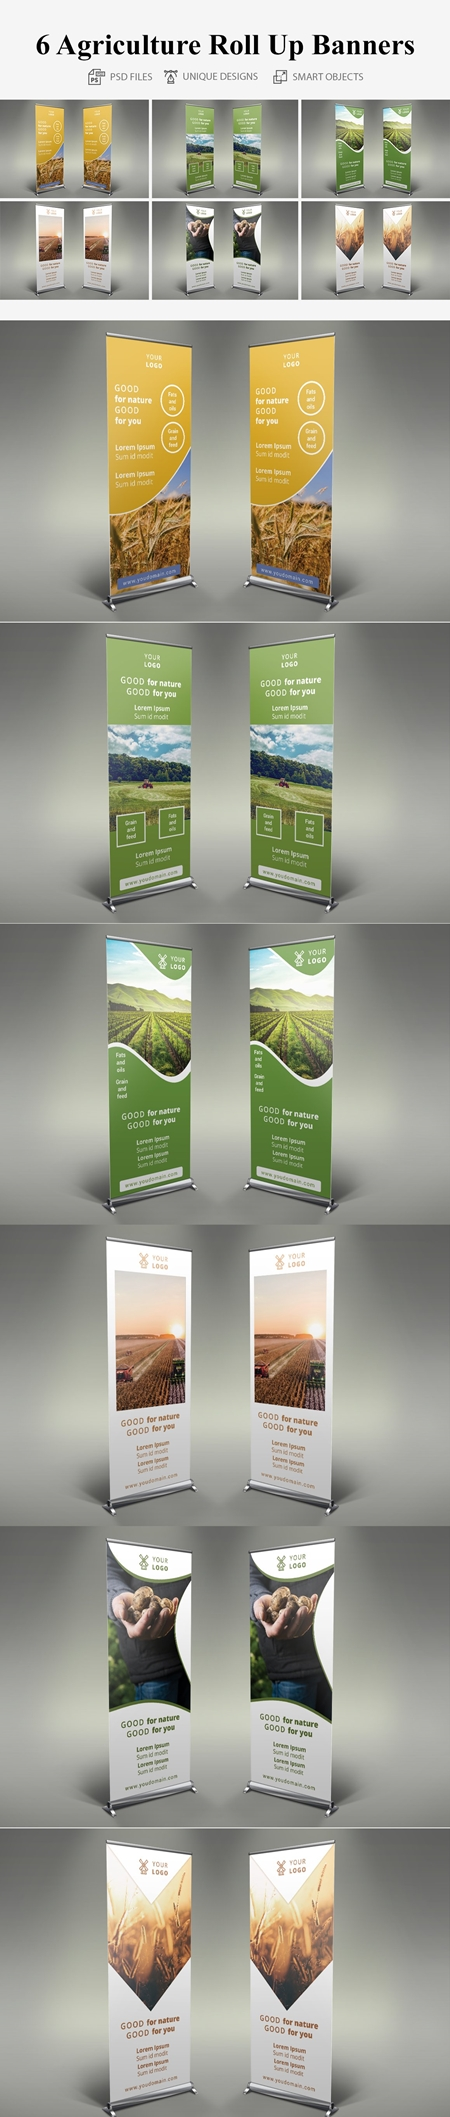 Roll Up Banners - 026 3659362 1